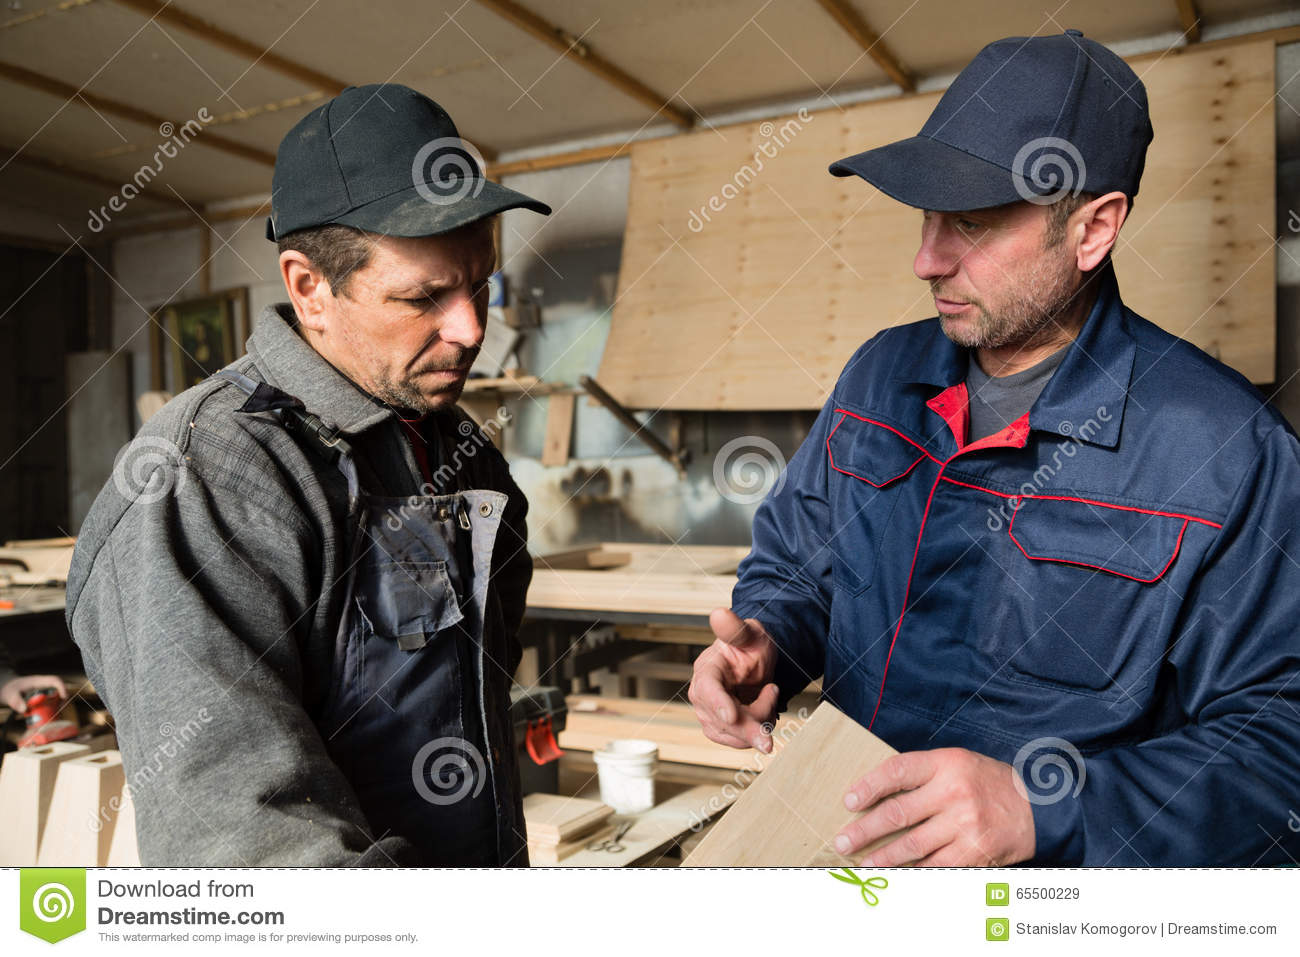 Carpenters discuss manufacturing products for the furniture.